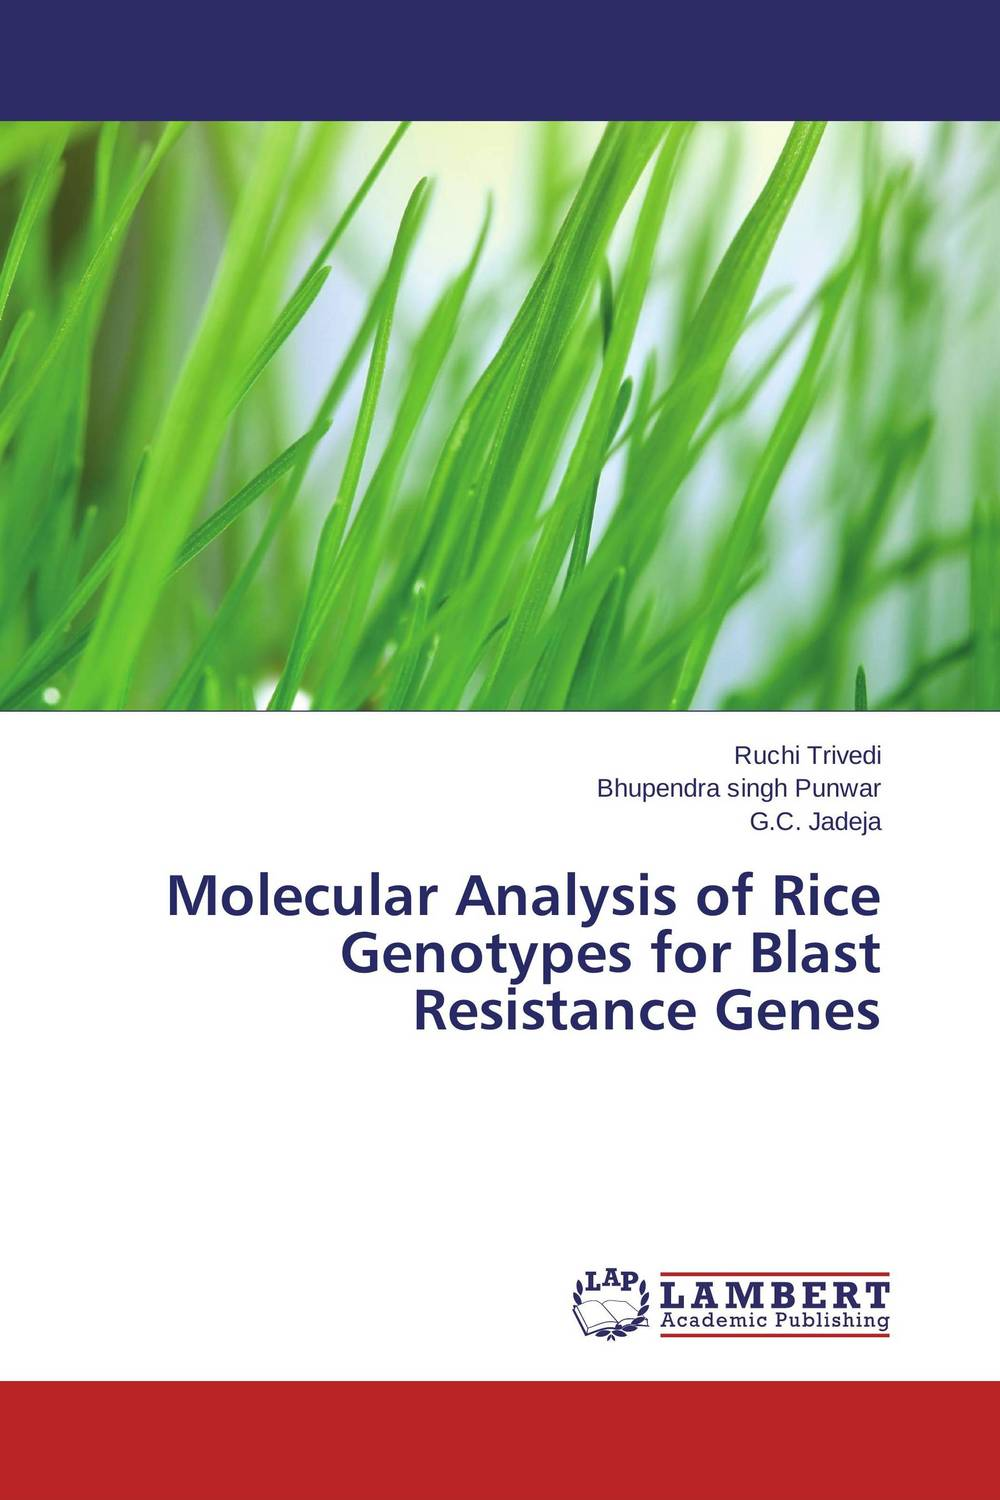 Molecular Analysis of Rice Genotypes for Blast Resistance Genes eman ibrahim el sayed abdel wahab molecular genetic characterization studies of some soybean cultivars